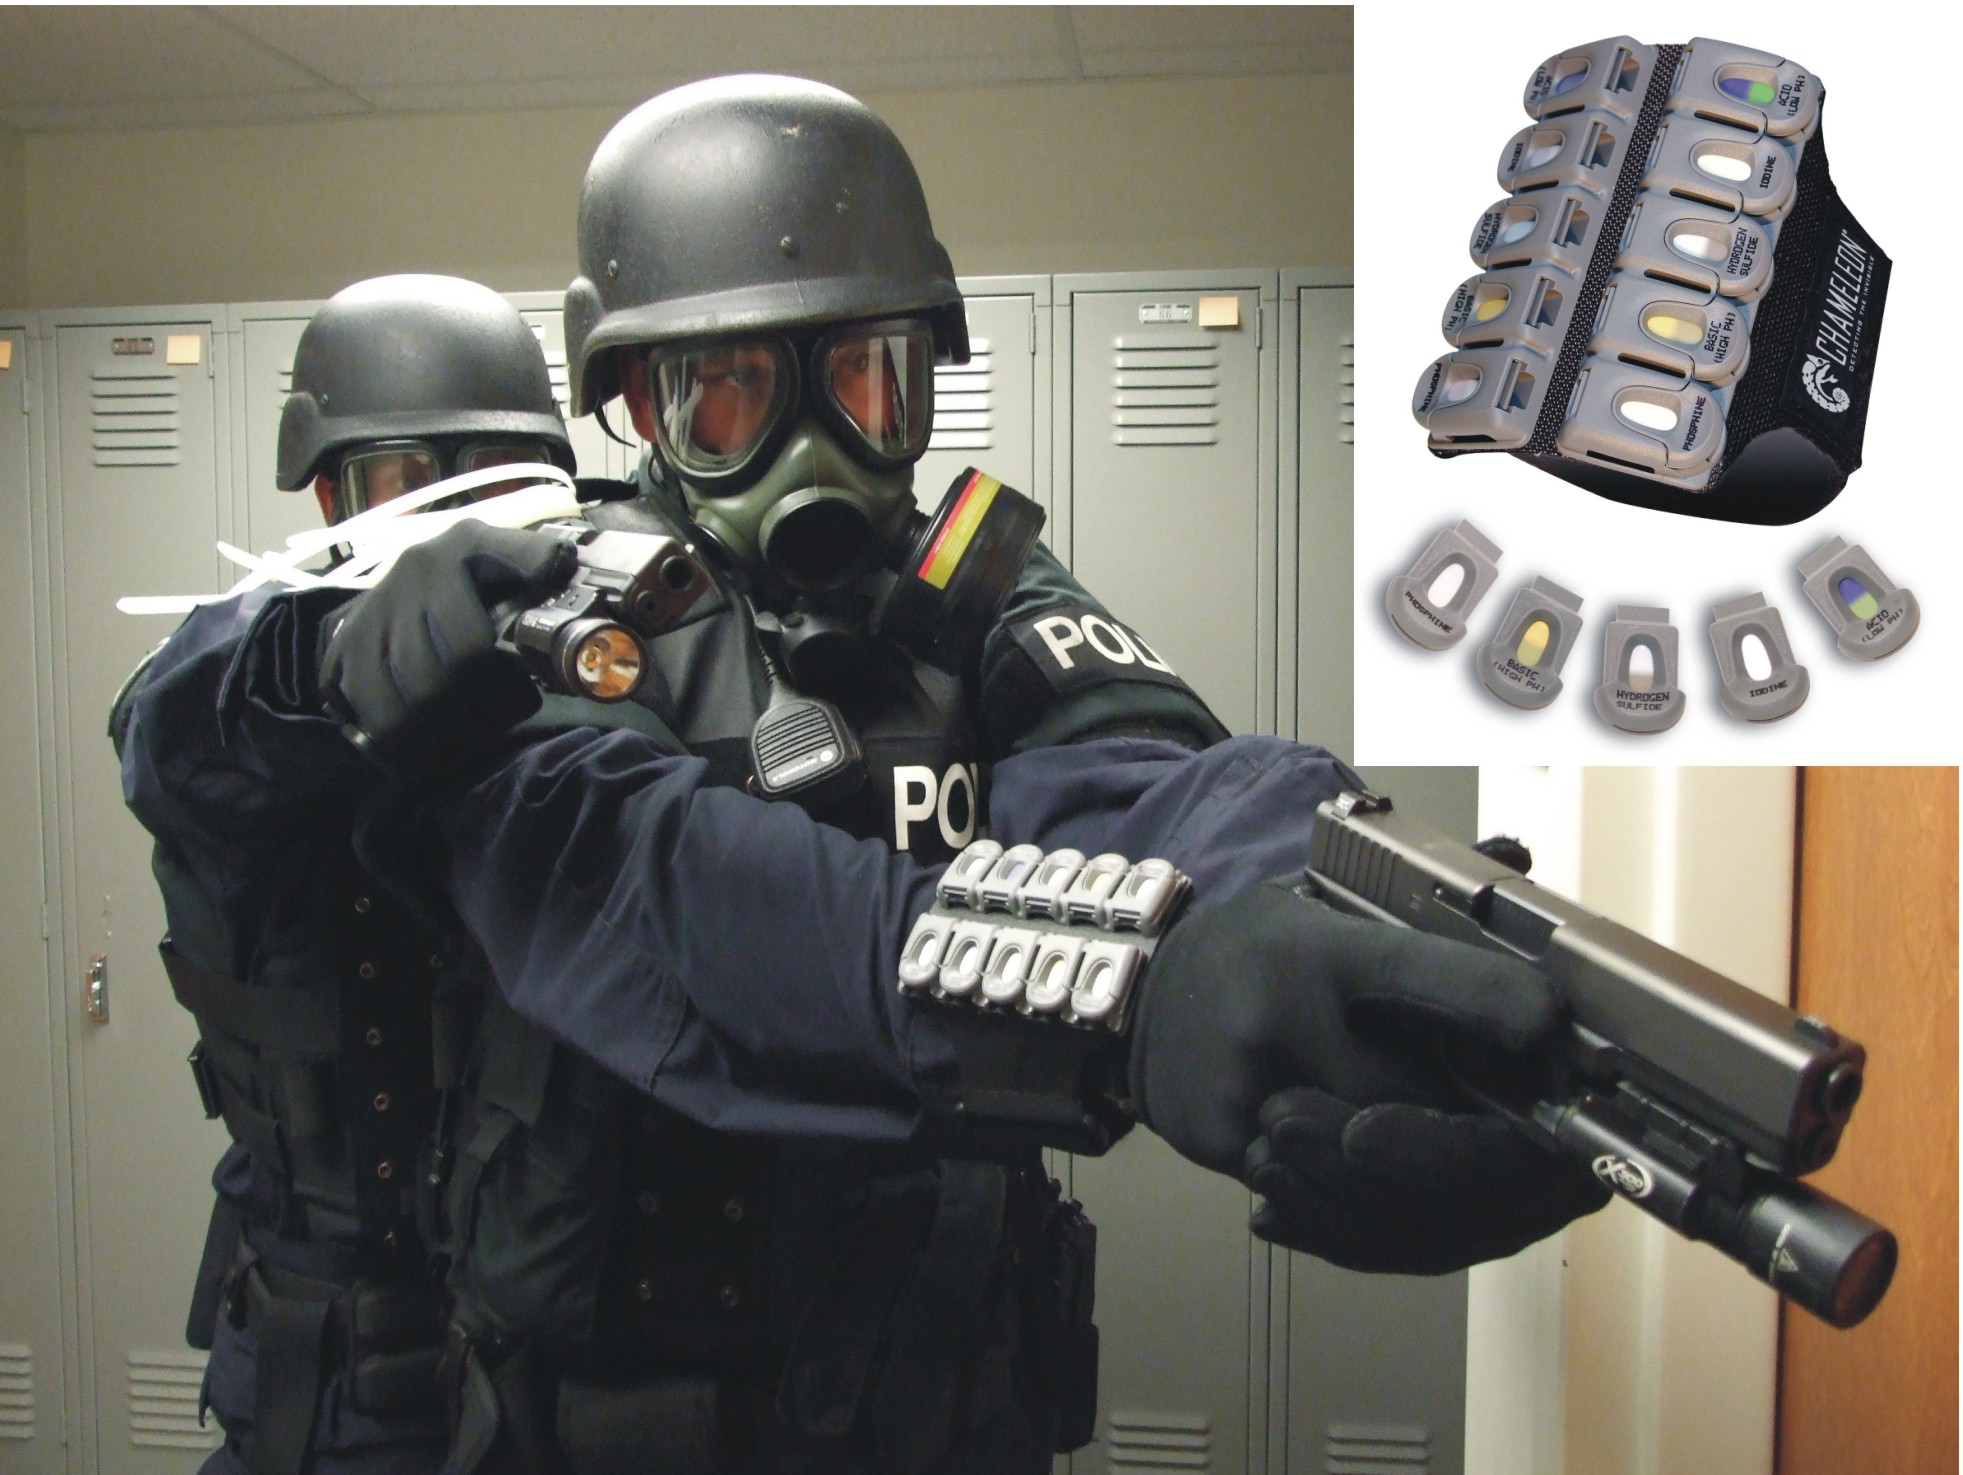 Morphix Technologies® Exhibiting at the National Tactical Officers Association's Annual Conference